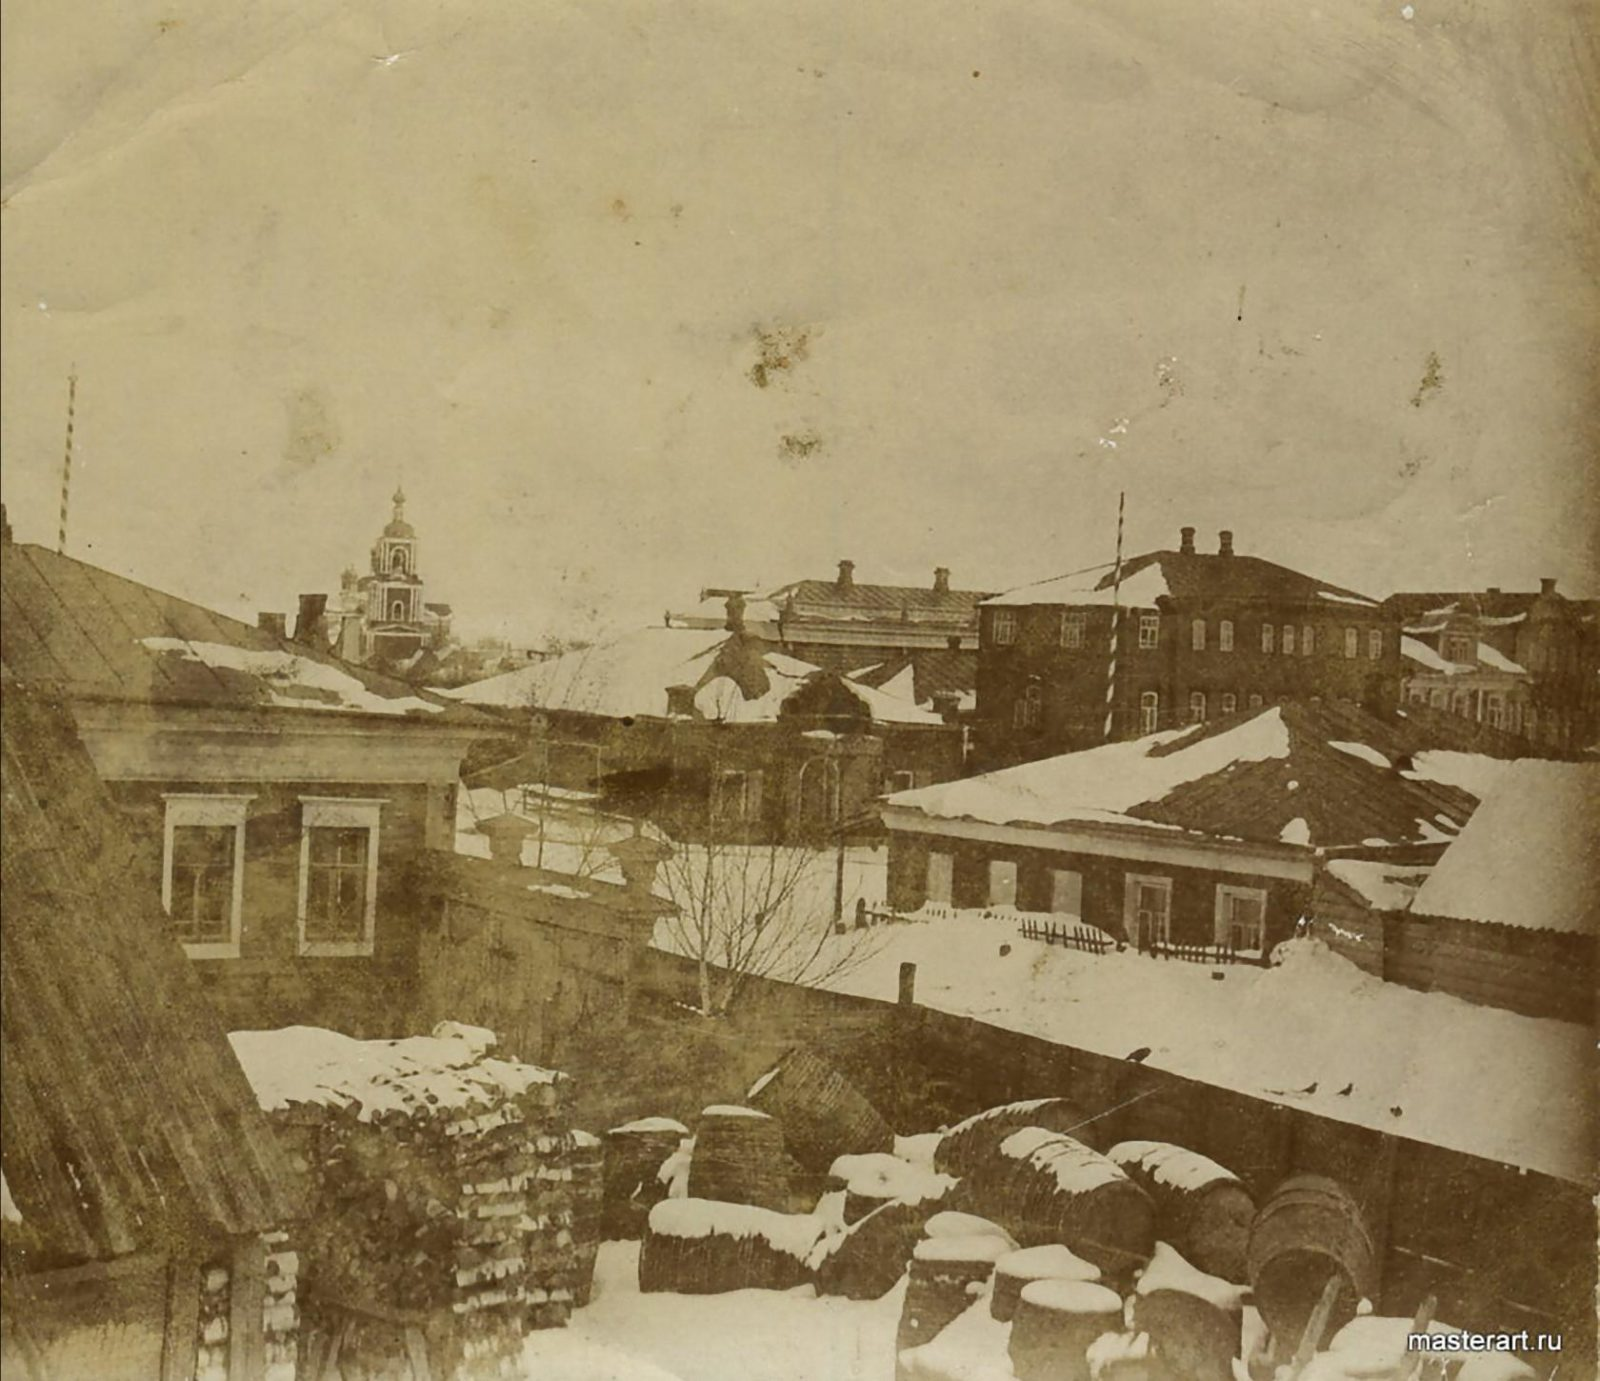 Murom, Urban buildings in winter. Barrels and firewood.